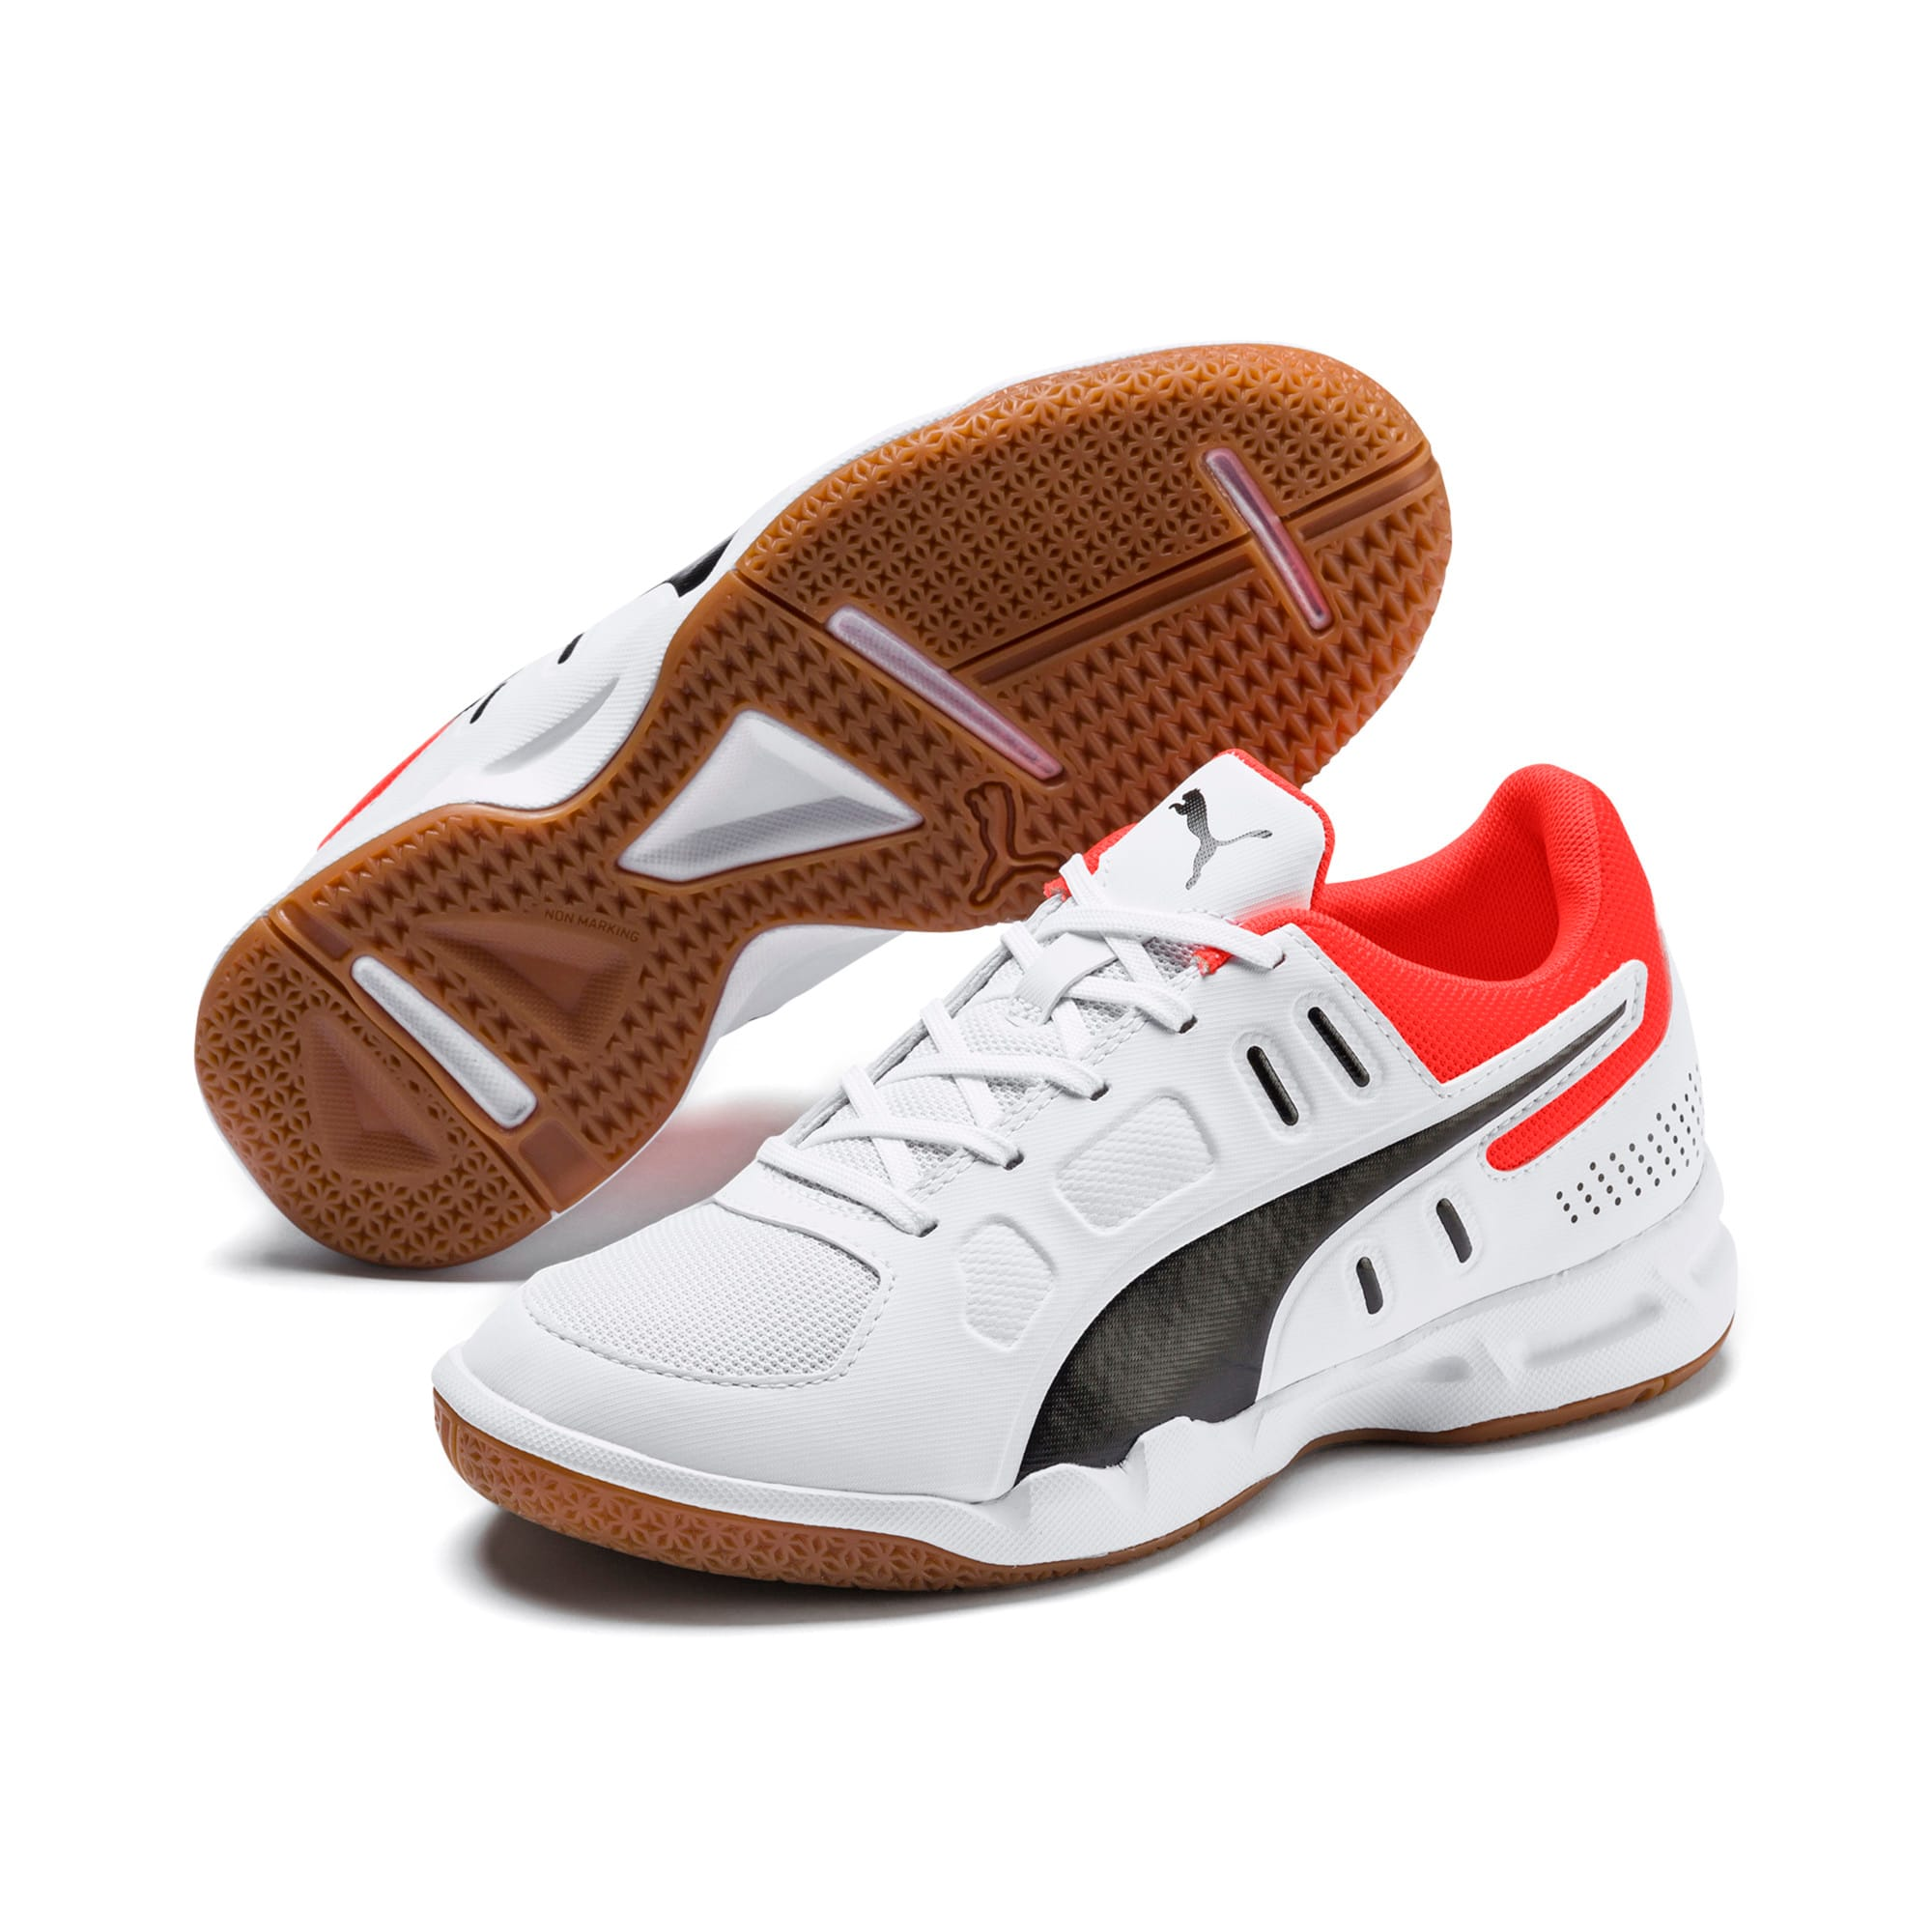 Thumbnail 2 of Auriz Youth Trainers, White-Black-Nrgy Red-Gum, medium